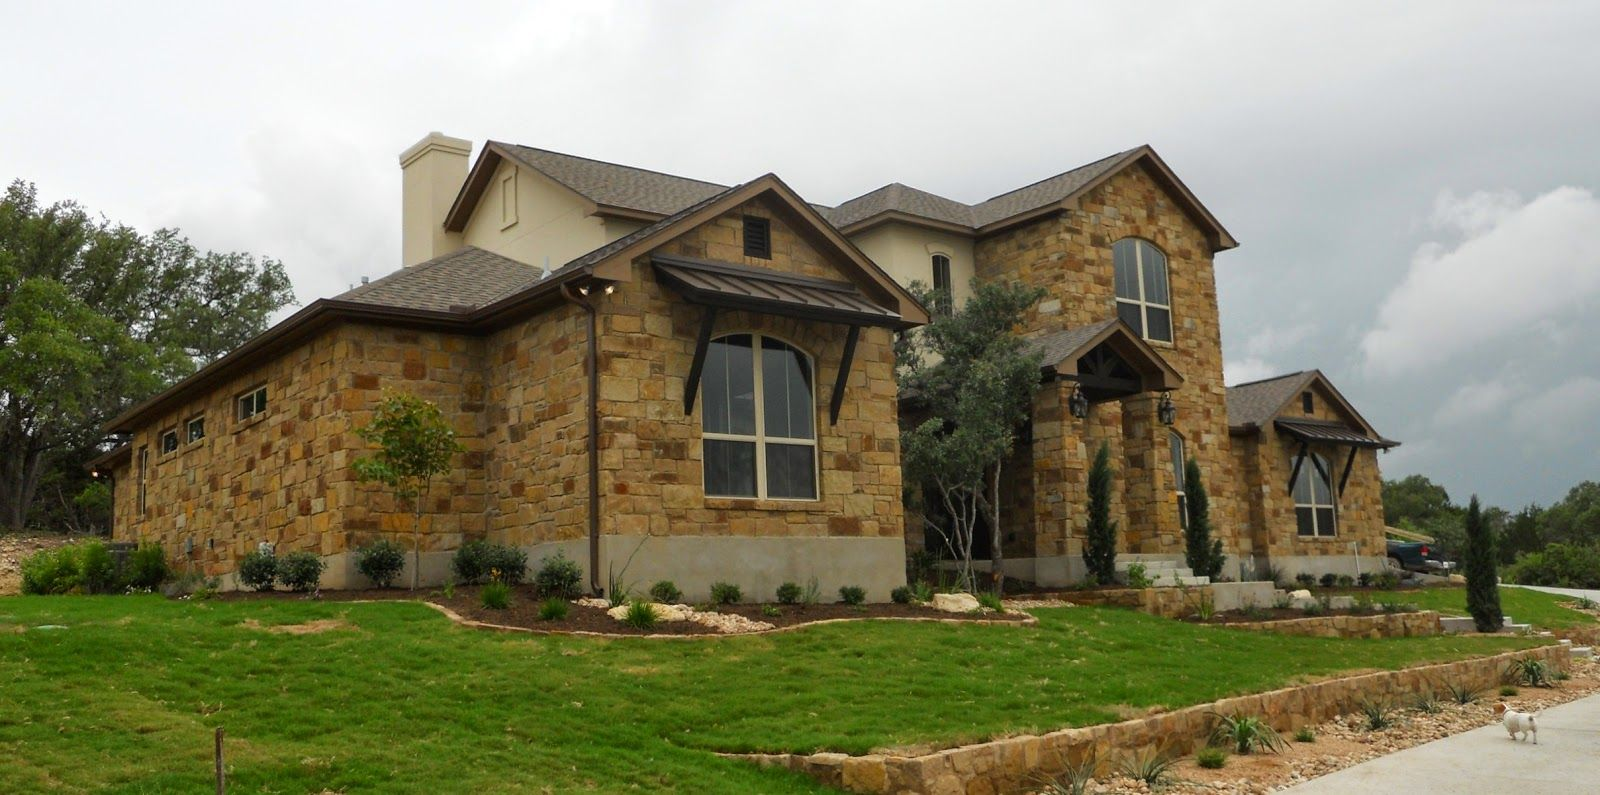 Best Kitchen Gallery: Texas Tuscan Google Search Texas Tuscan Pinterest Texas of Hill Country Home Designs  on rachelxblog.com